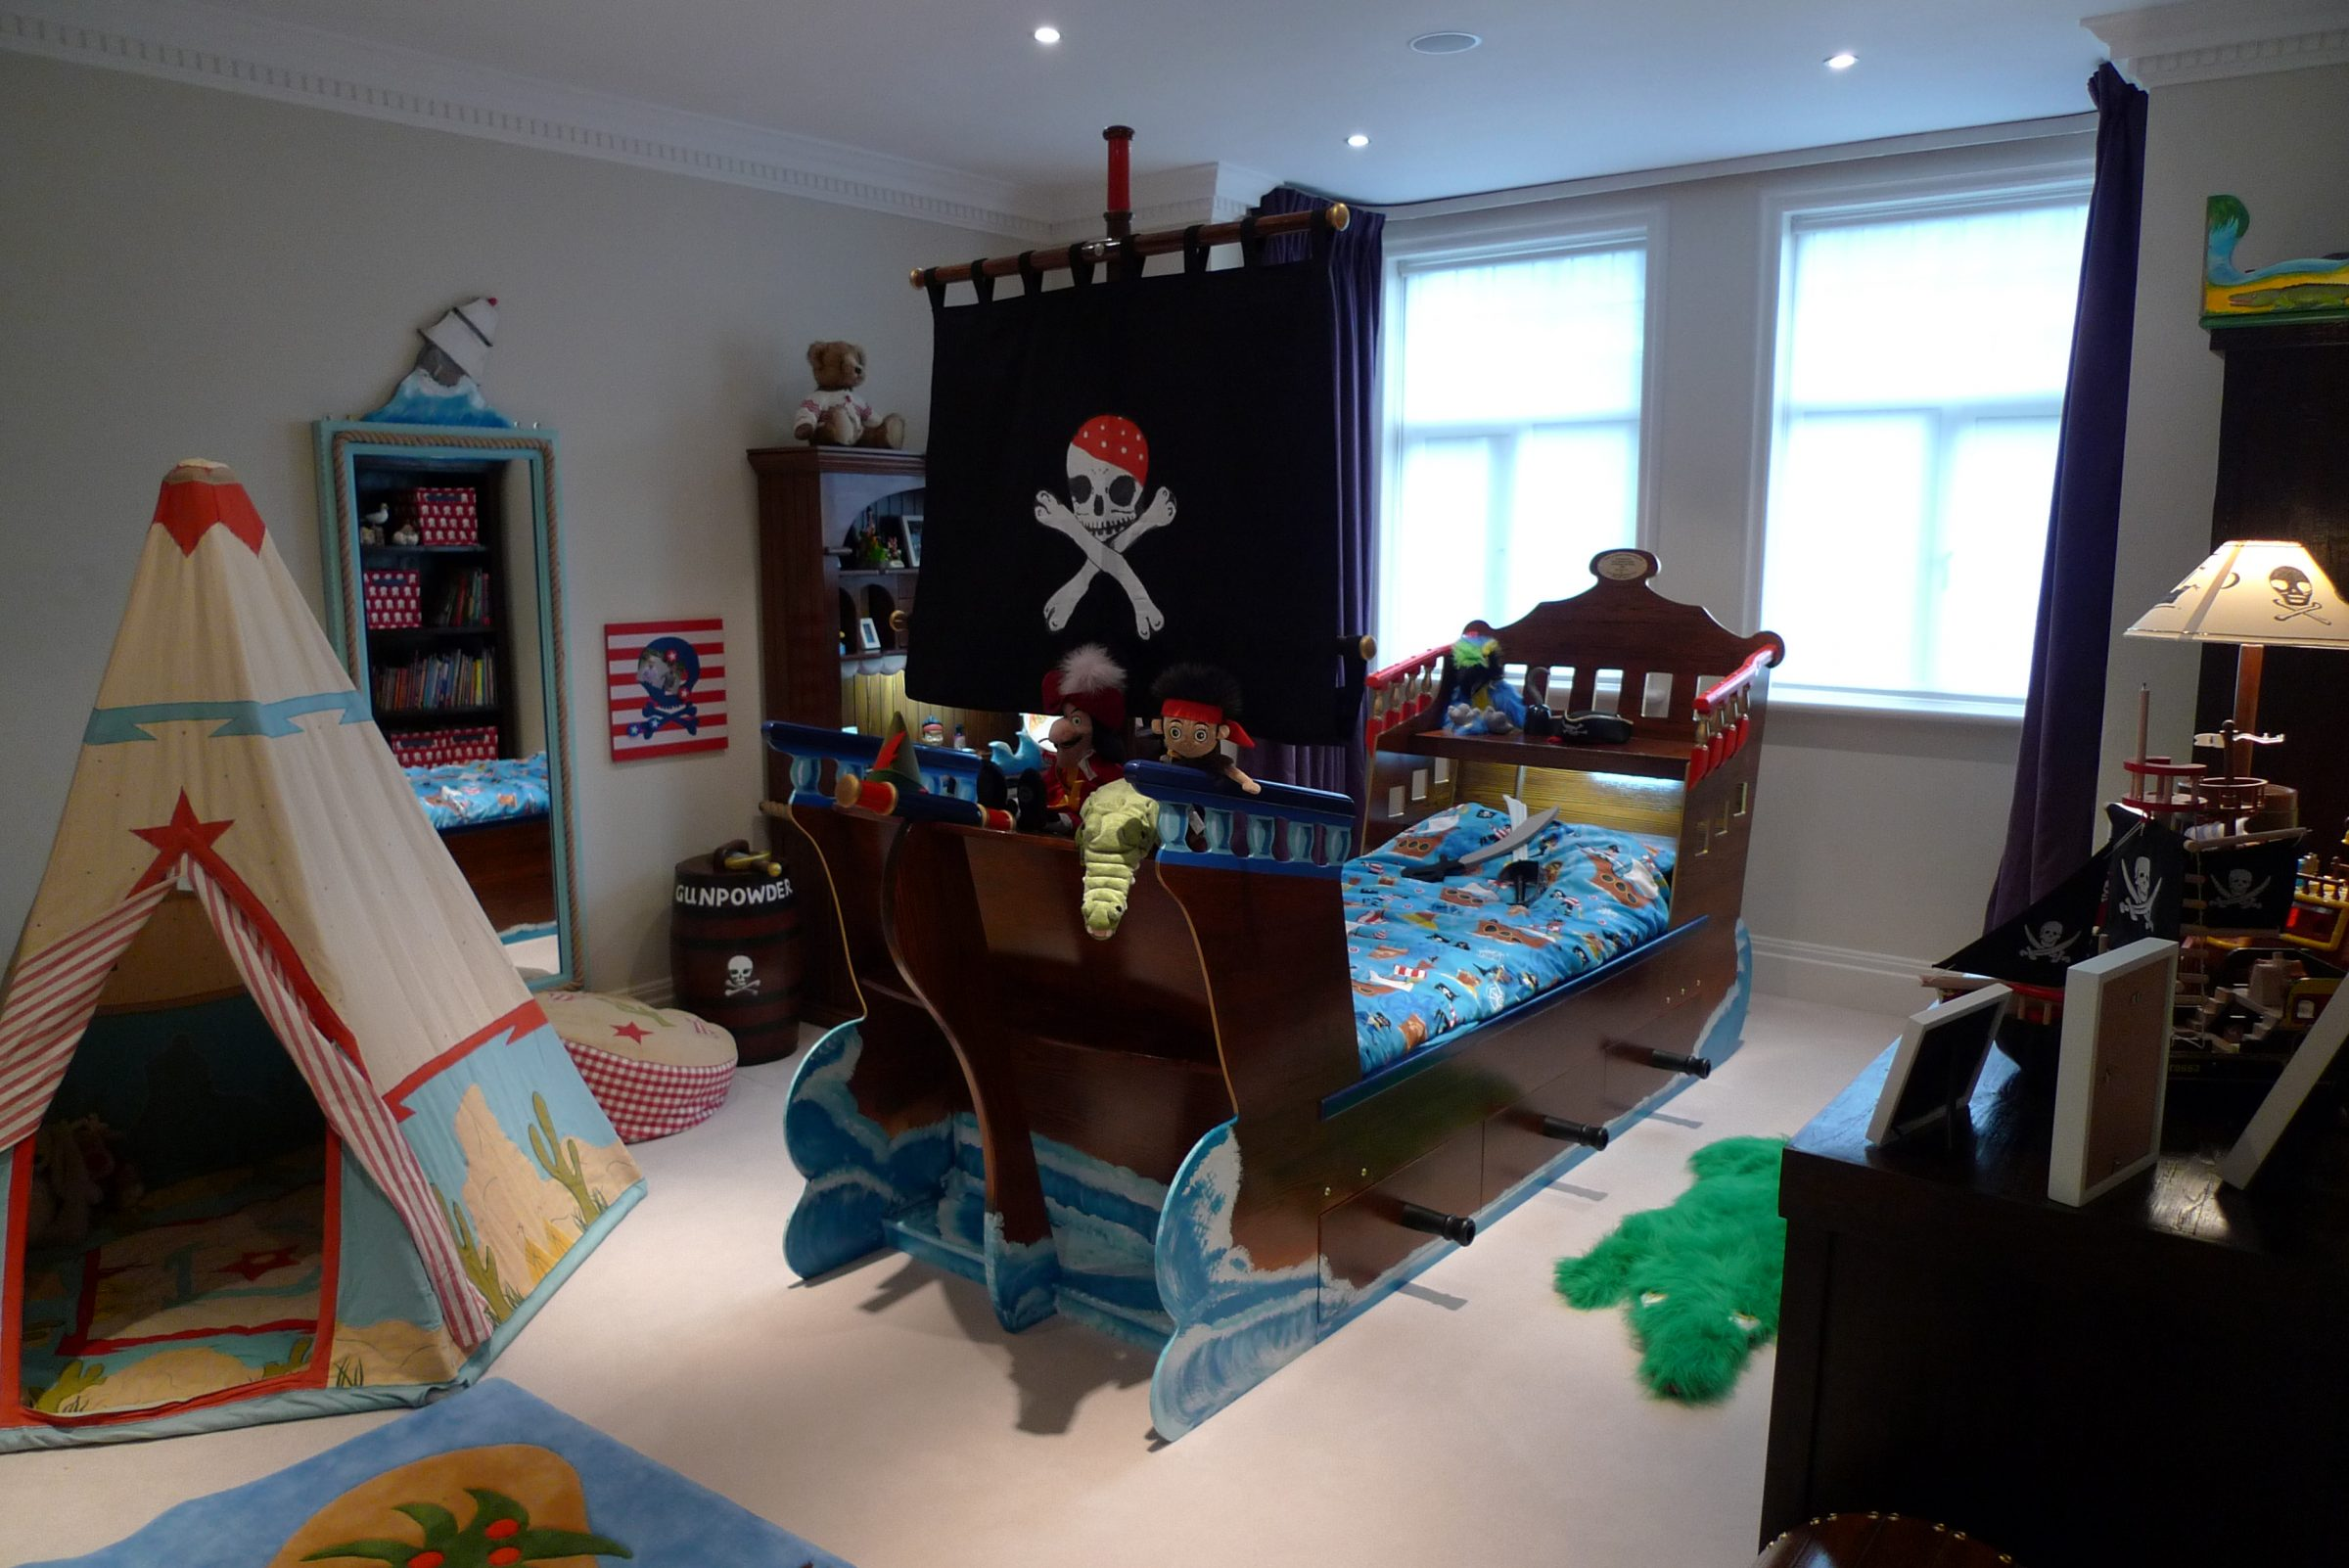 Pirate Ship Beds Flights Of Fantasy